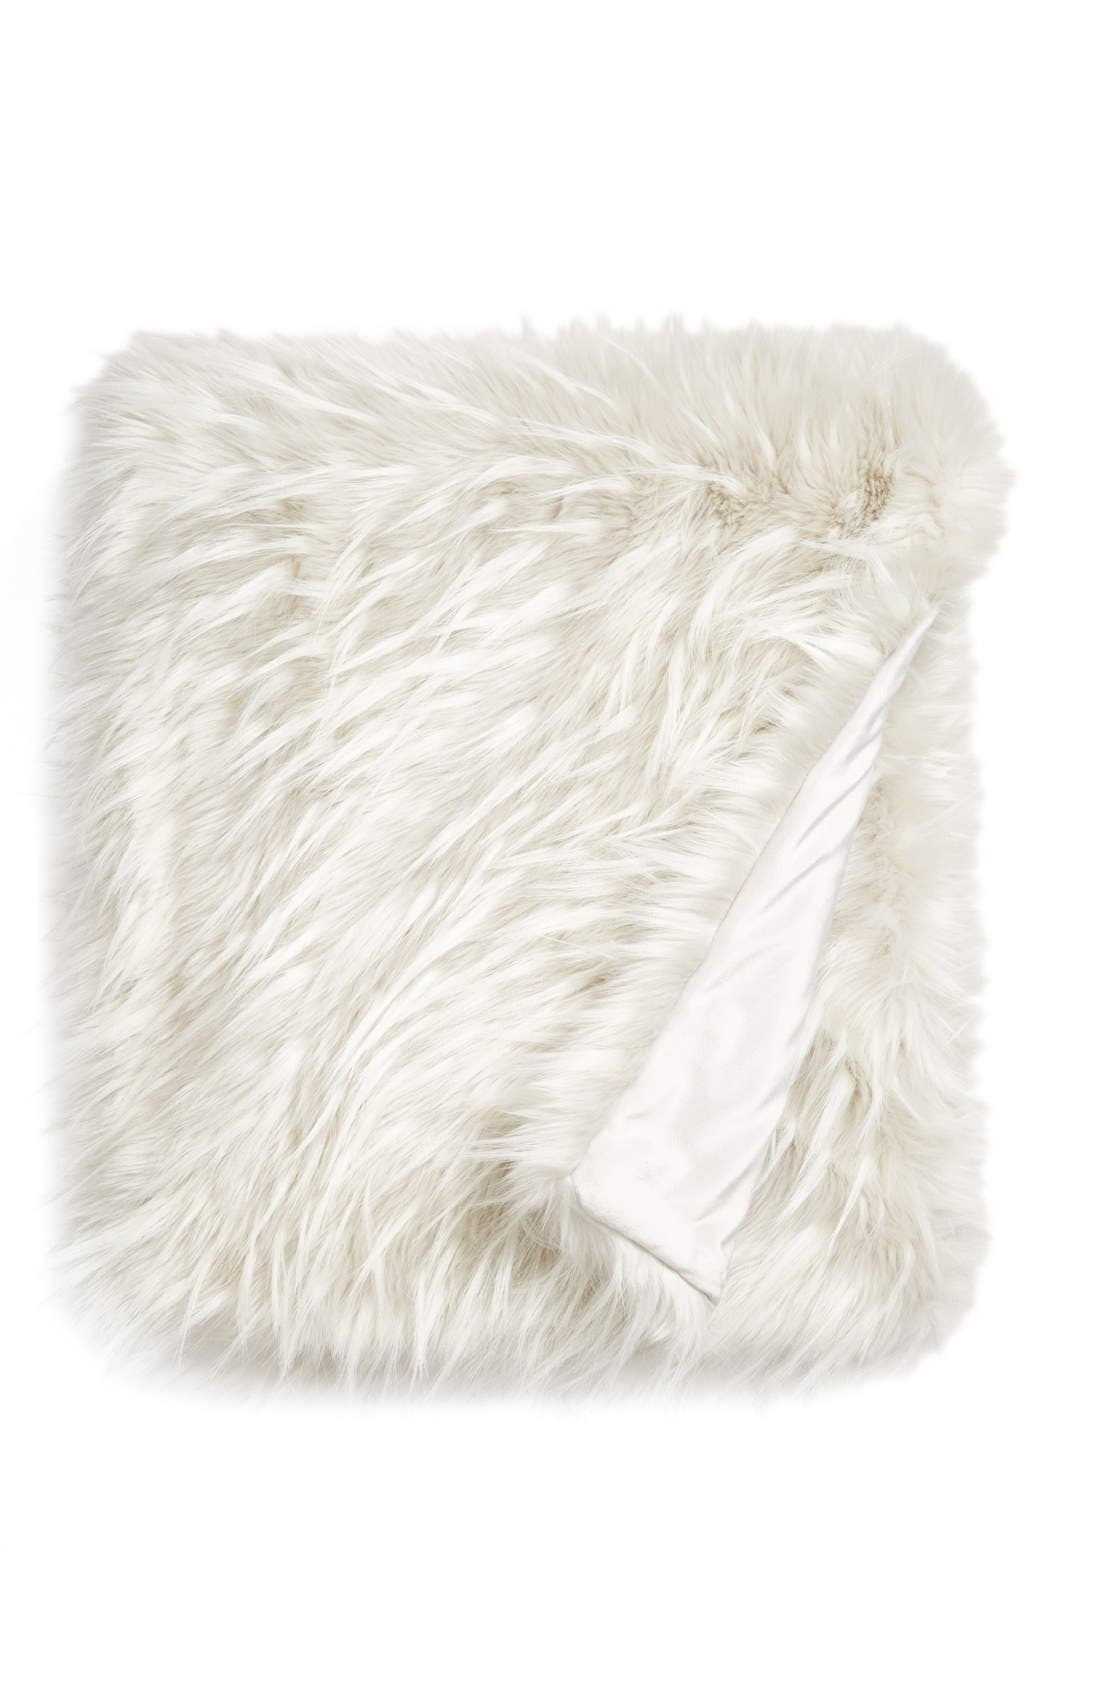 Cuddle Up Faux Fur Throw,                             Main thumbnail 1, color,                             021